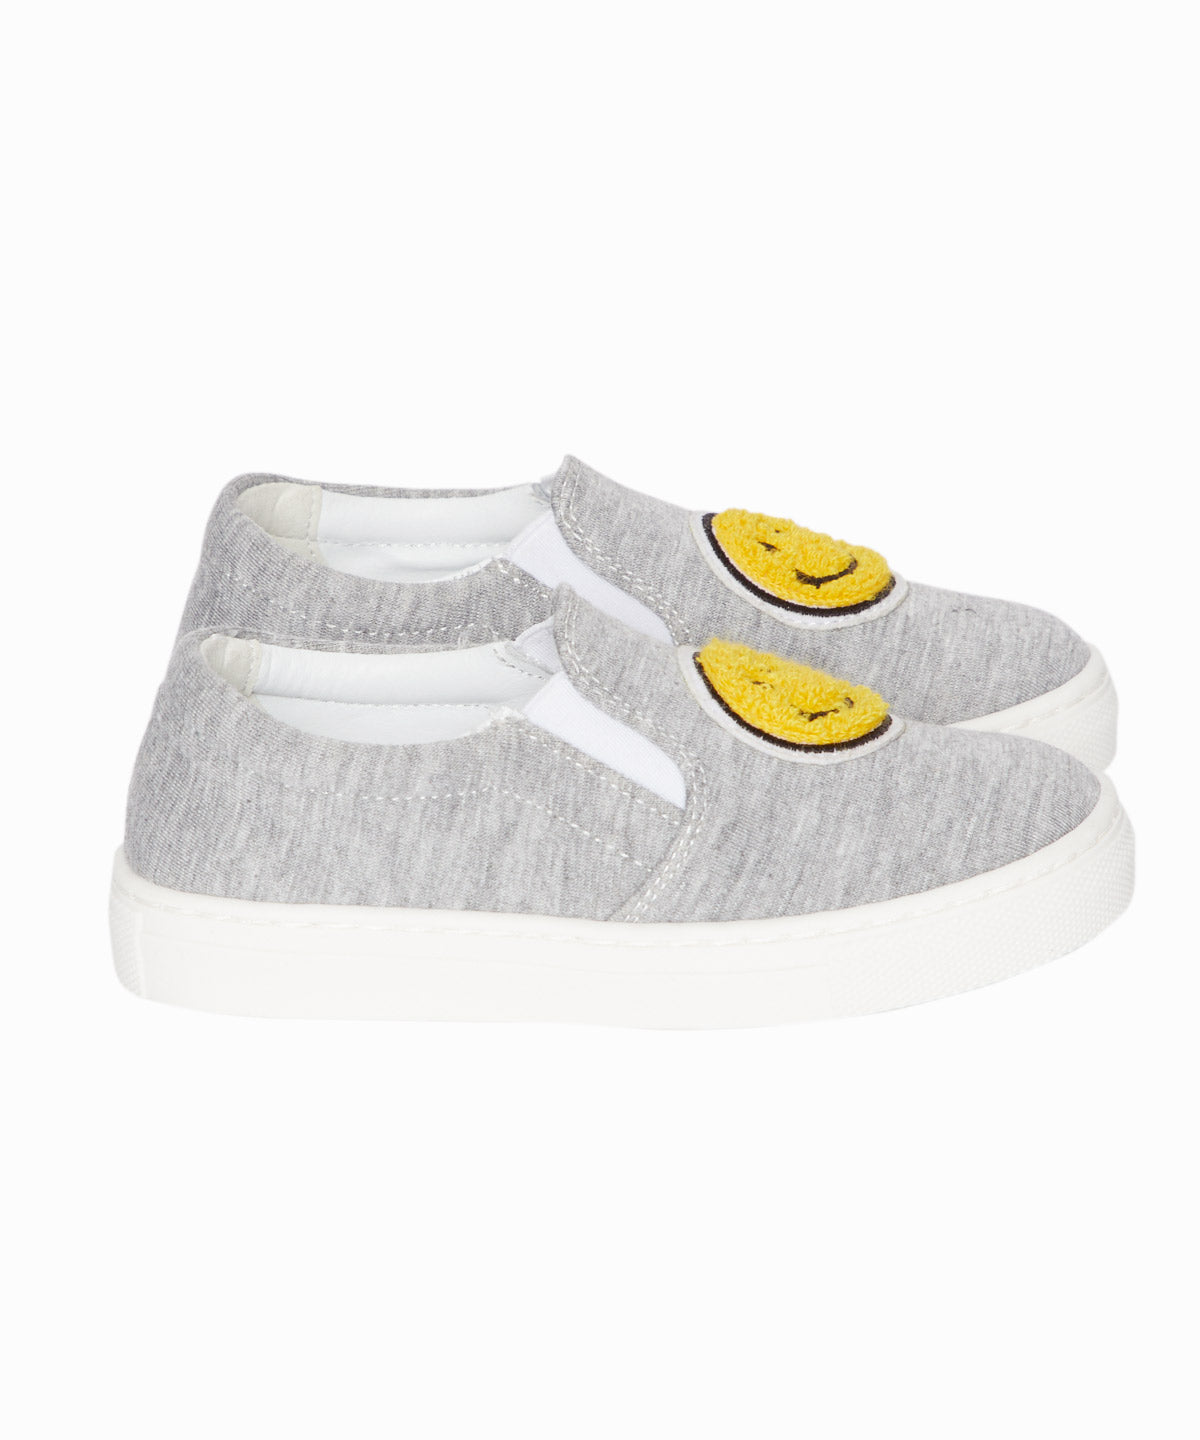 Smiley Grey Jersey Slip-On Sneakers